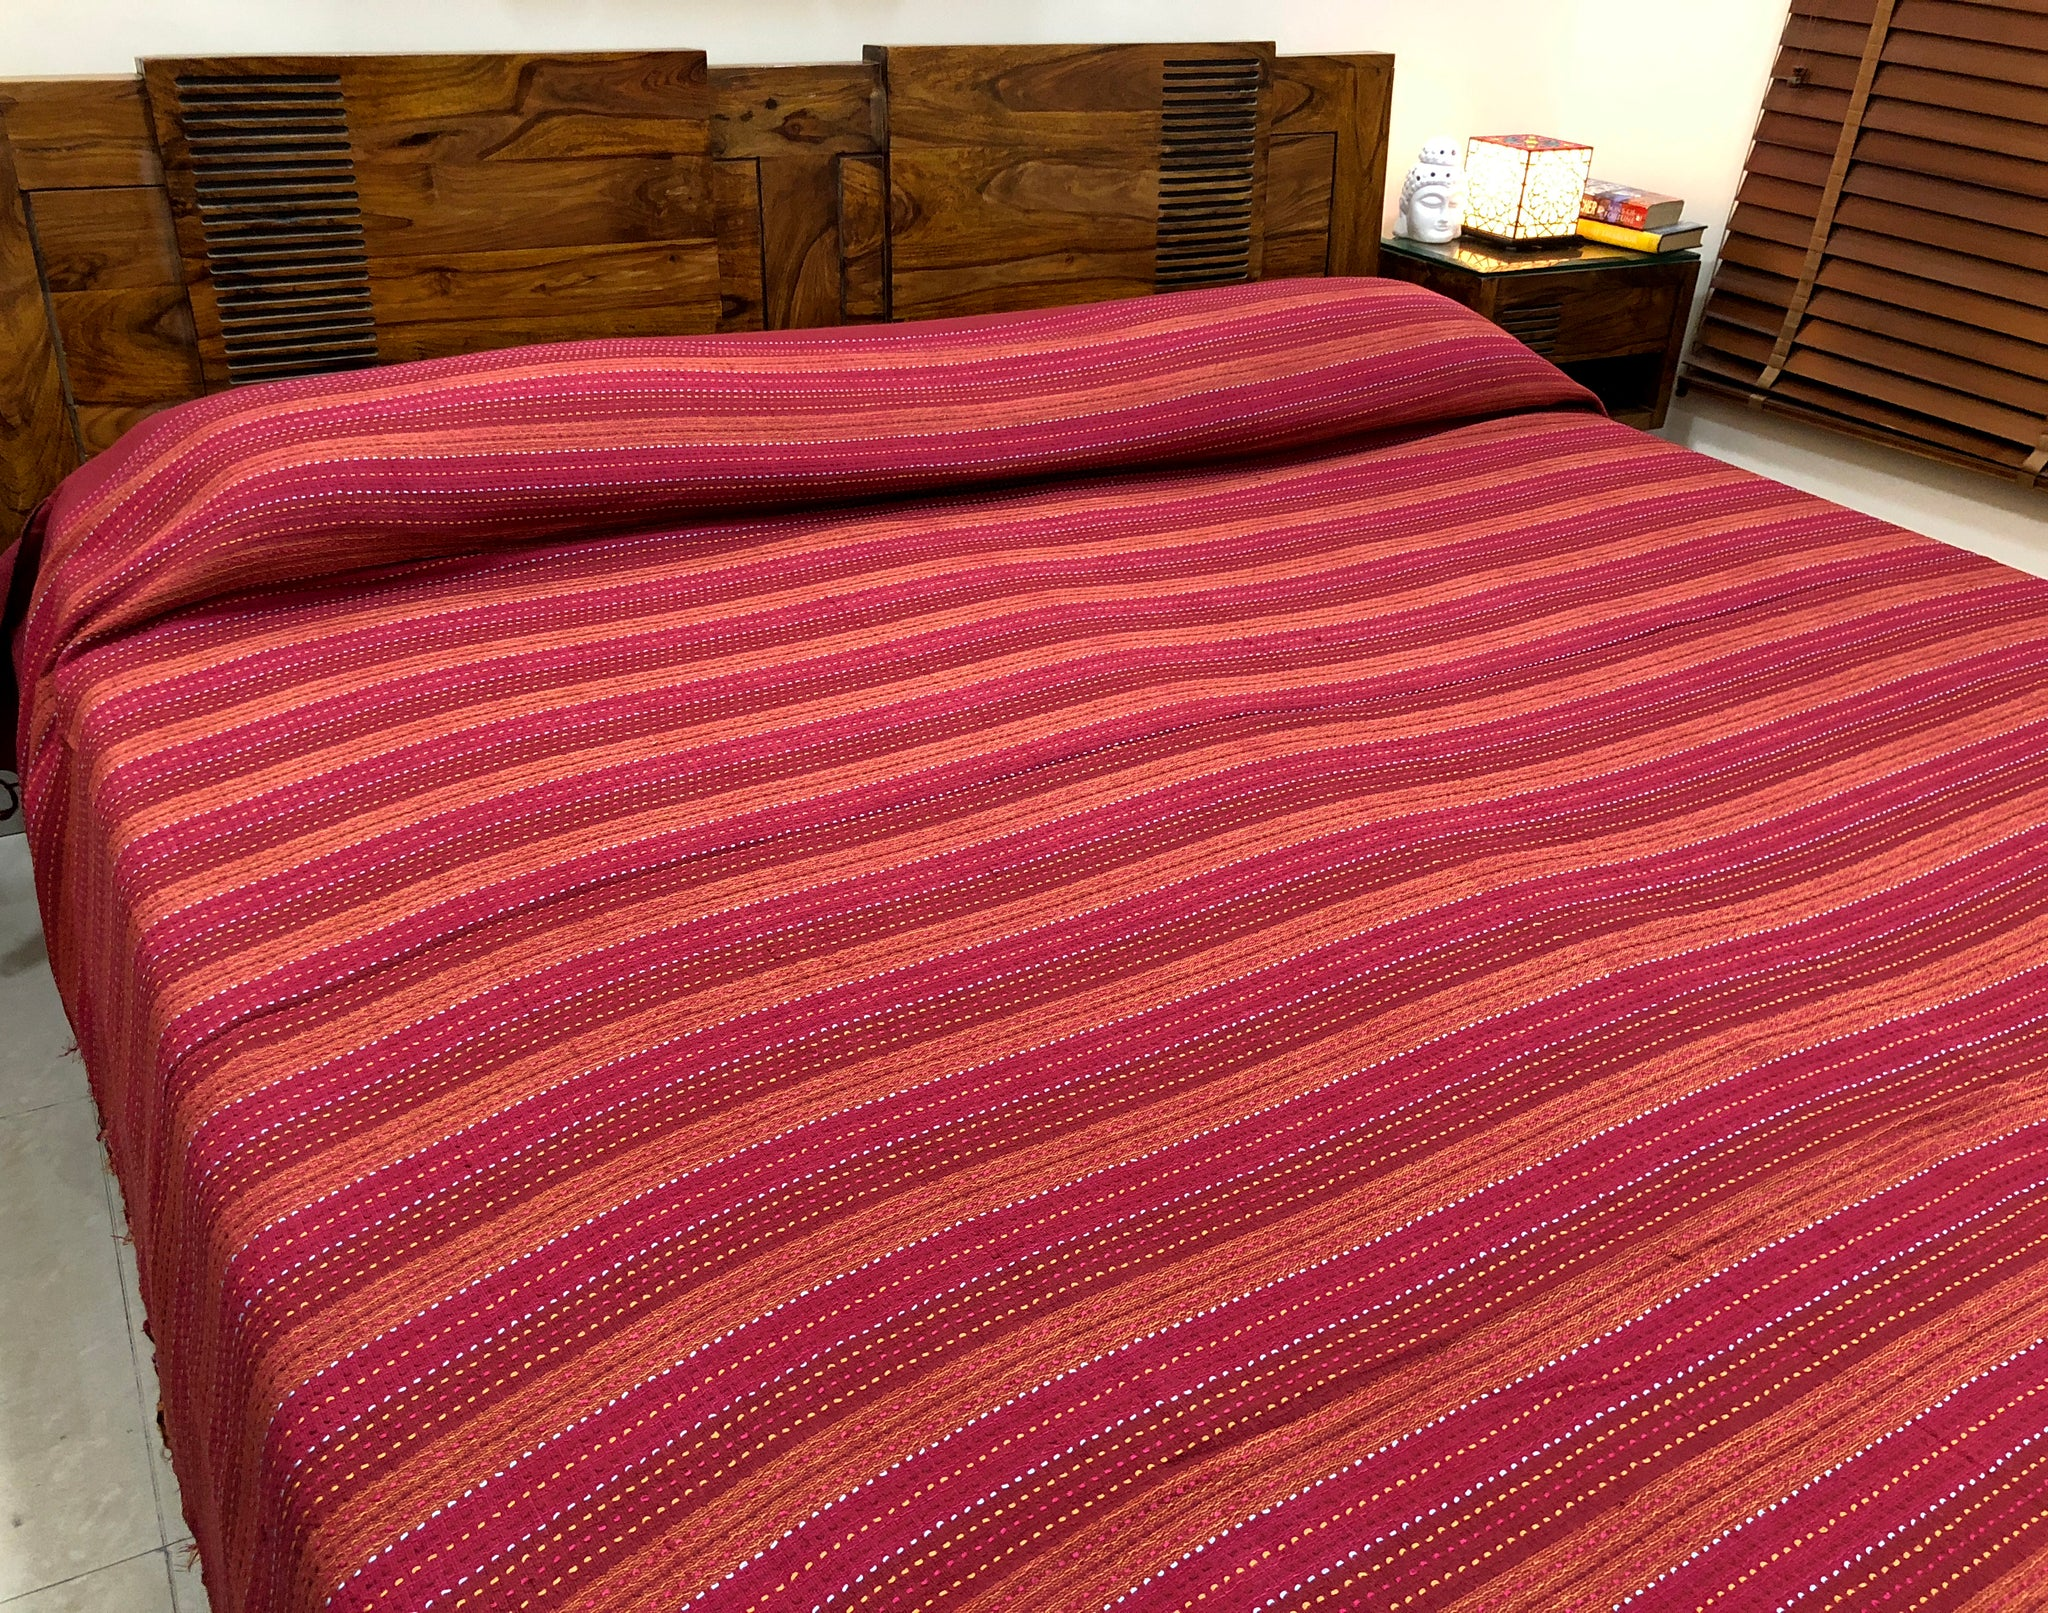 handwoven-double-bed-cover-for-diwali-gift